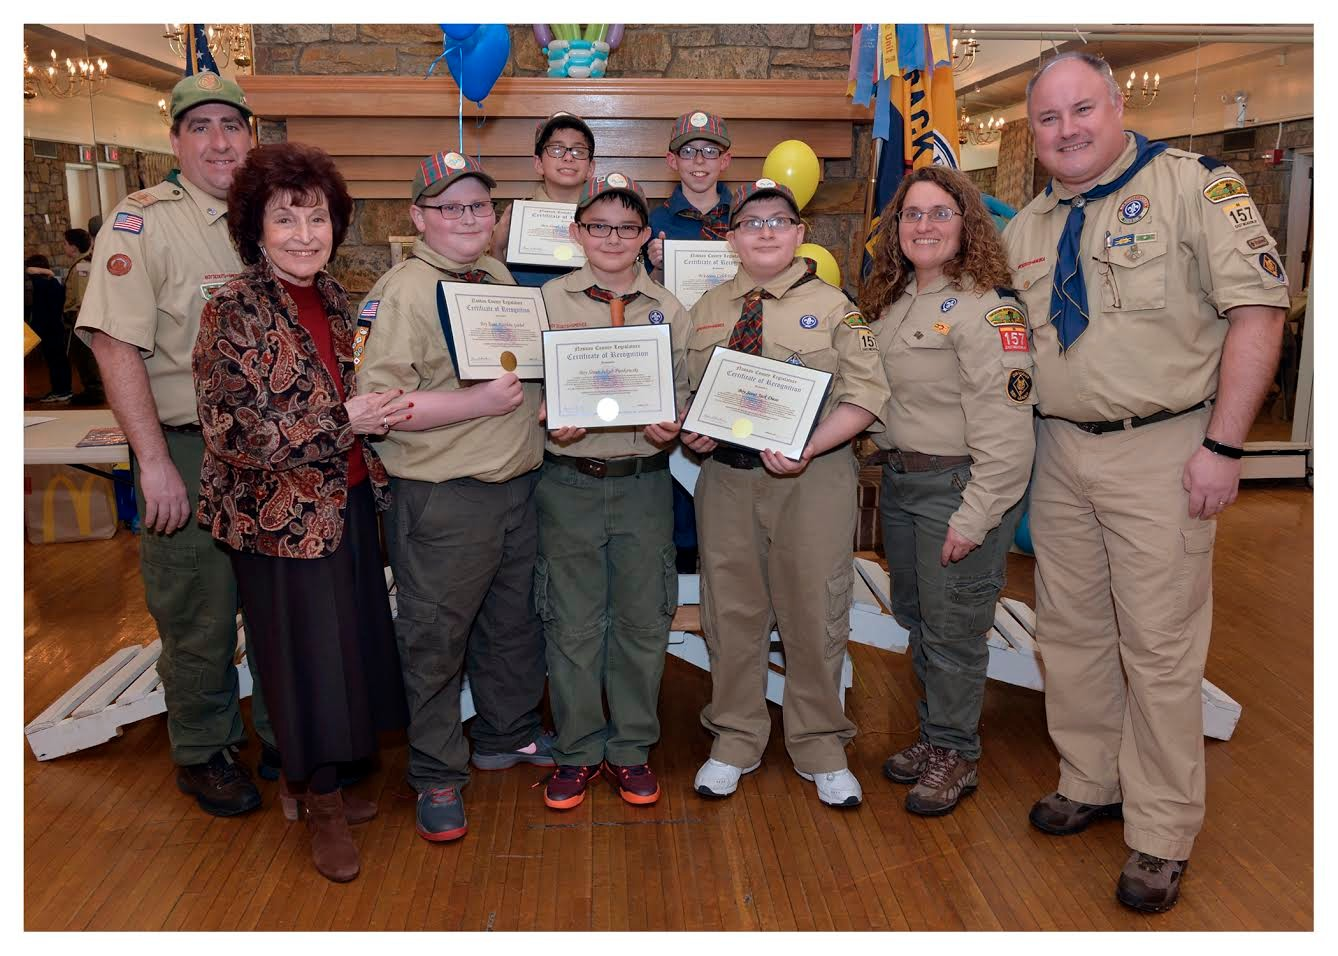 Scout Master Rodie Geoghegan, left, first row, Presiding Officer Norma Gonsalves, Scouts Matthew Goebel, Jakub Pienkowski, Jack Dieso, Arrow of Light Leader Marni Schlectman & Cub Master Tim O'Sullivan, and Scouts Aaron Schlectman and Caleb Haller, back row, attended the Blue and Gold Dinner for Cub Scout Pack 157 in North Merrick.